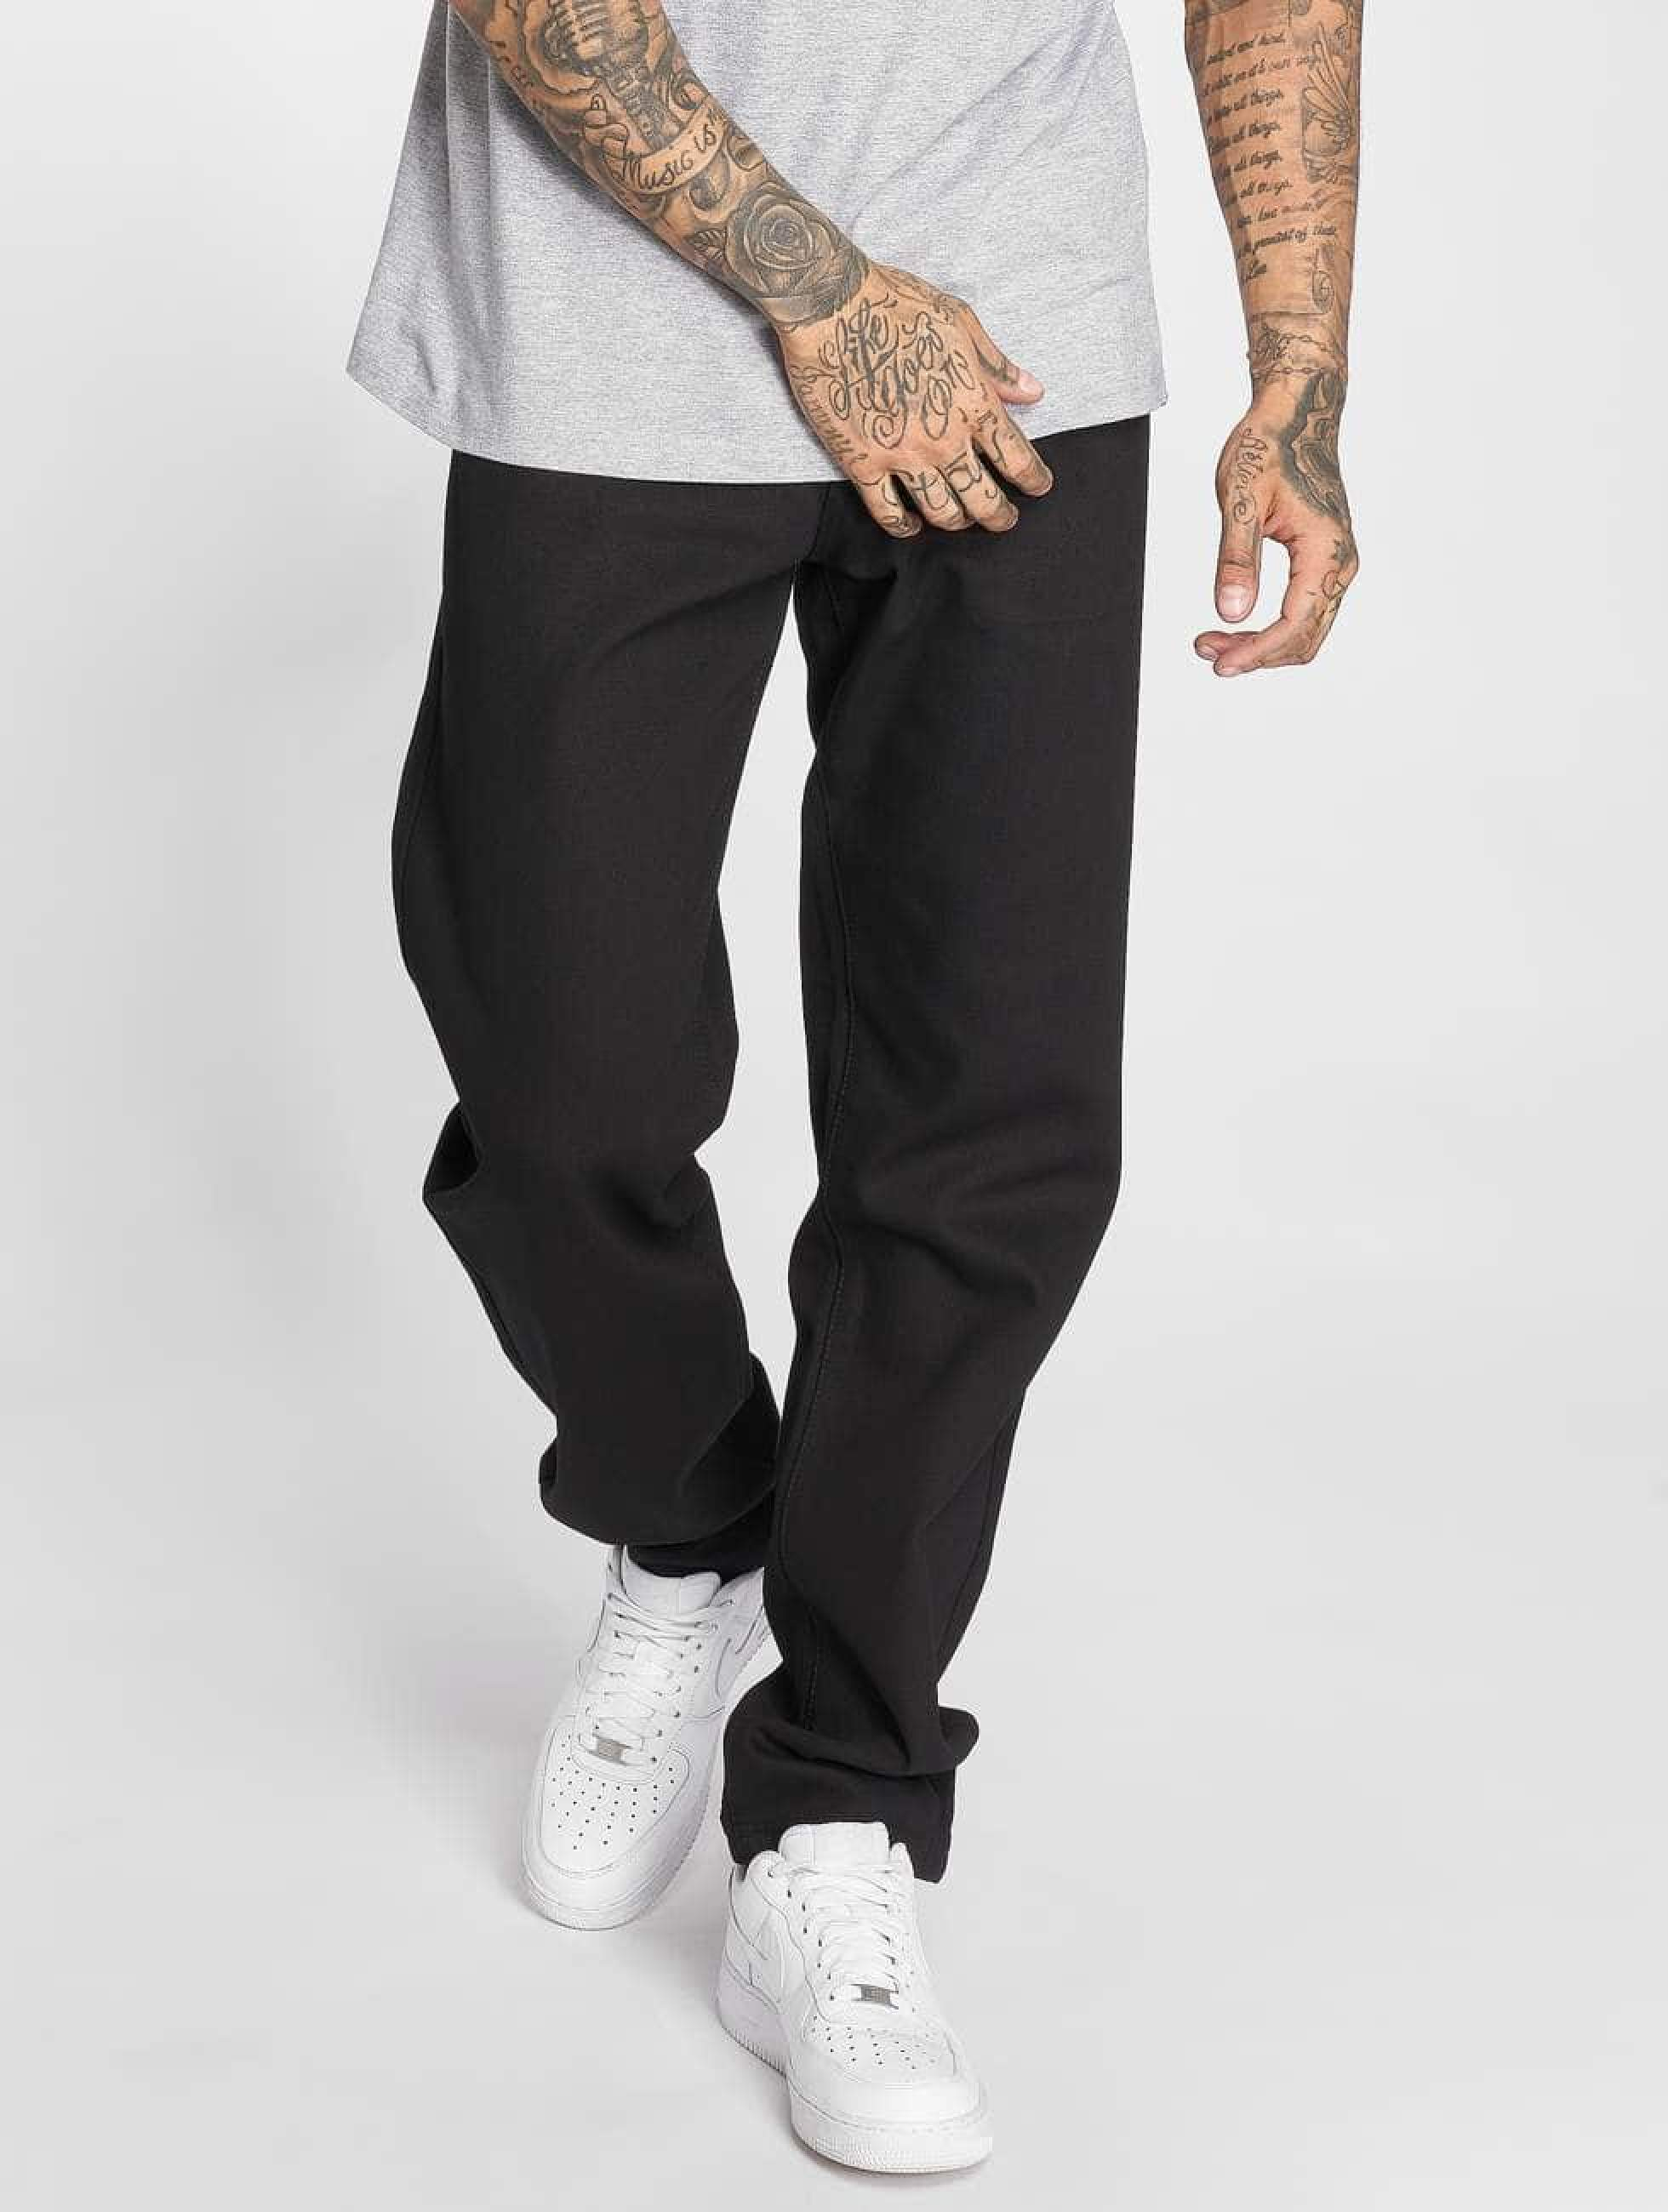 Thug Life / Carrot Fit Jeans B . Denim in black W 31 L 32